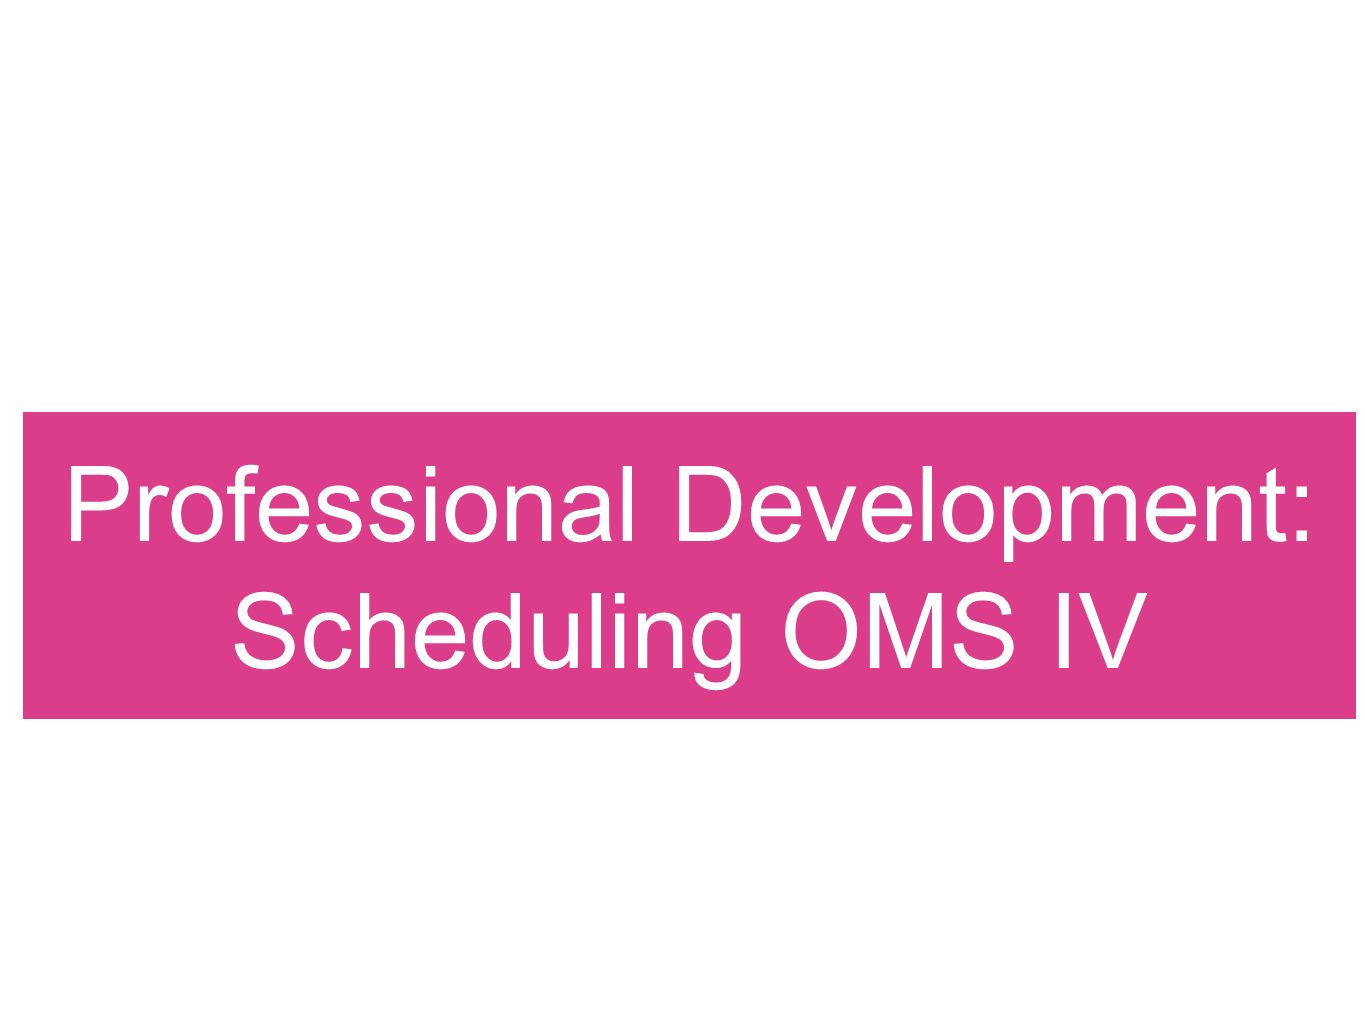 Professional Development: Scheduling OMS IV